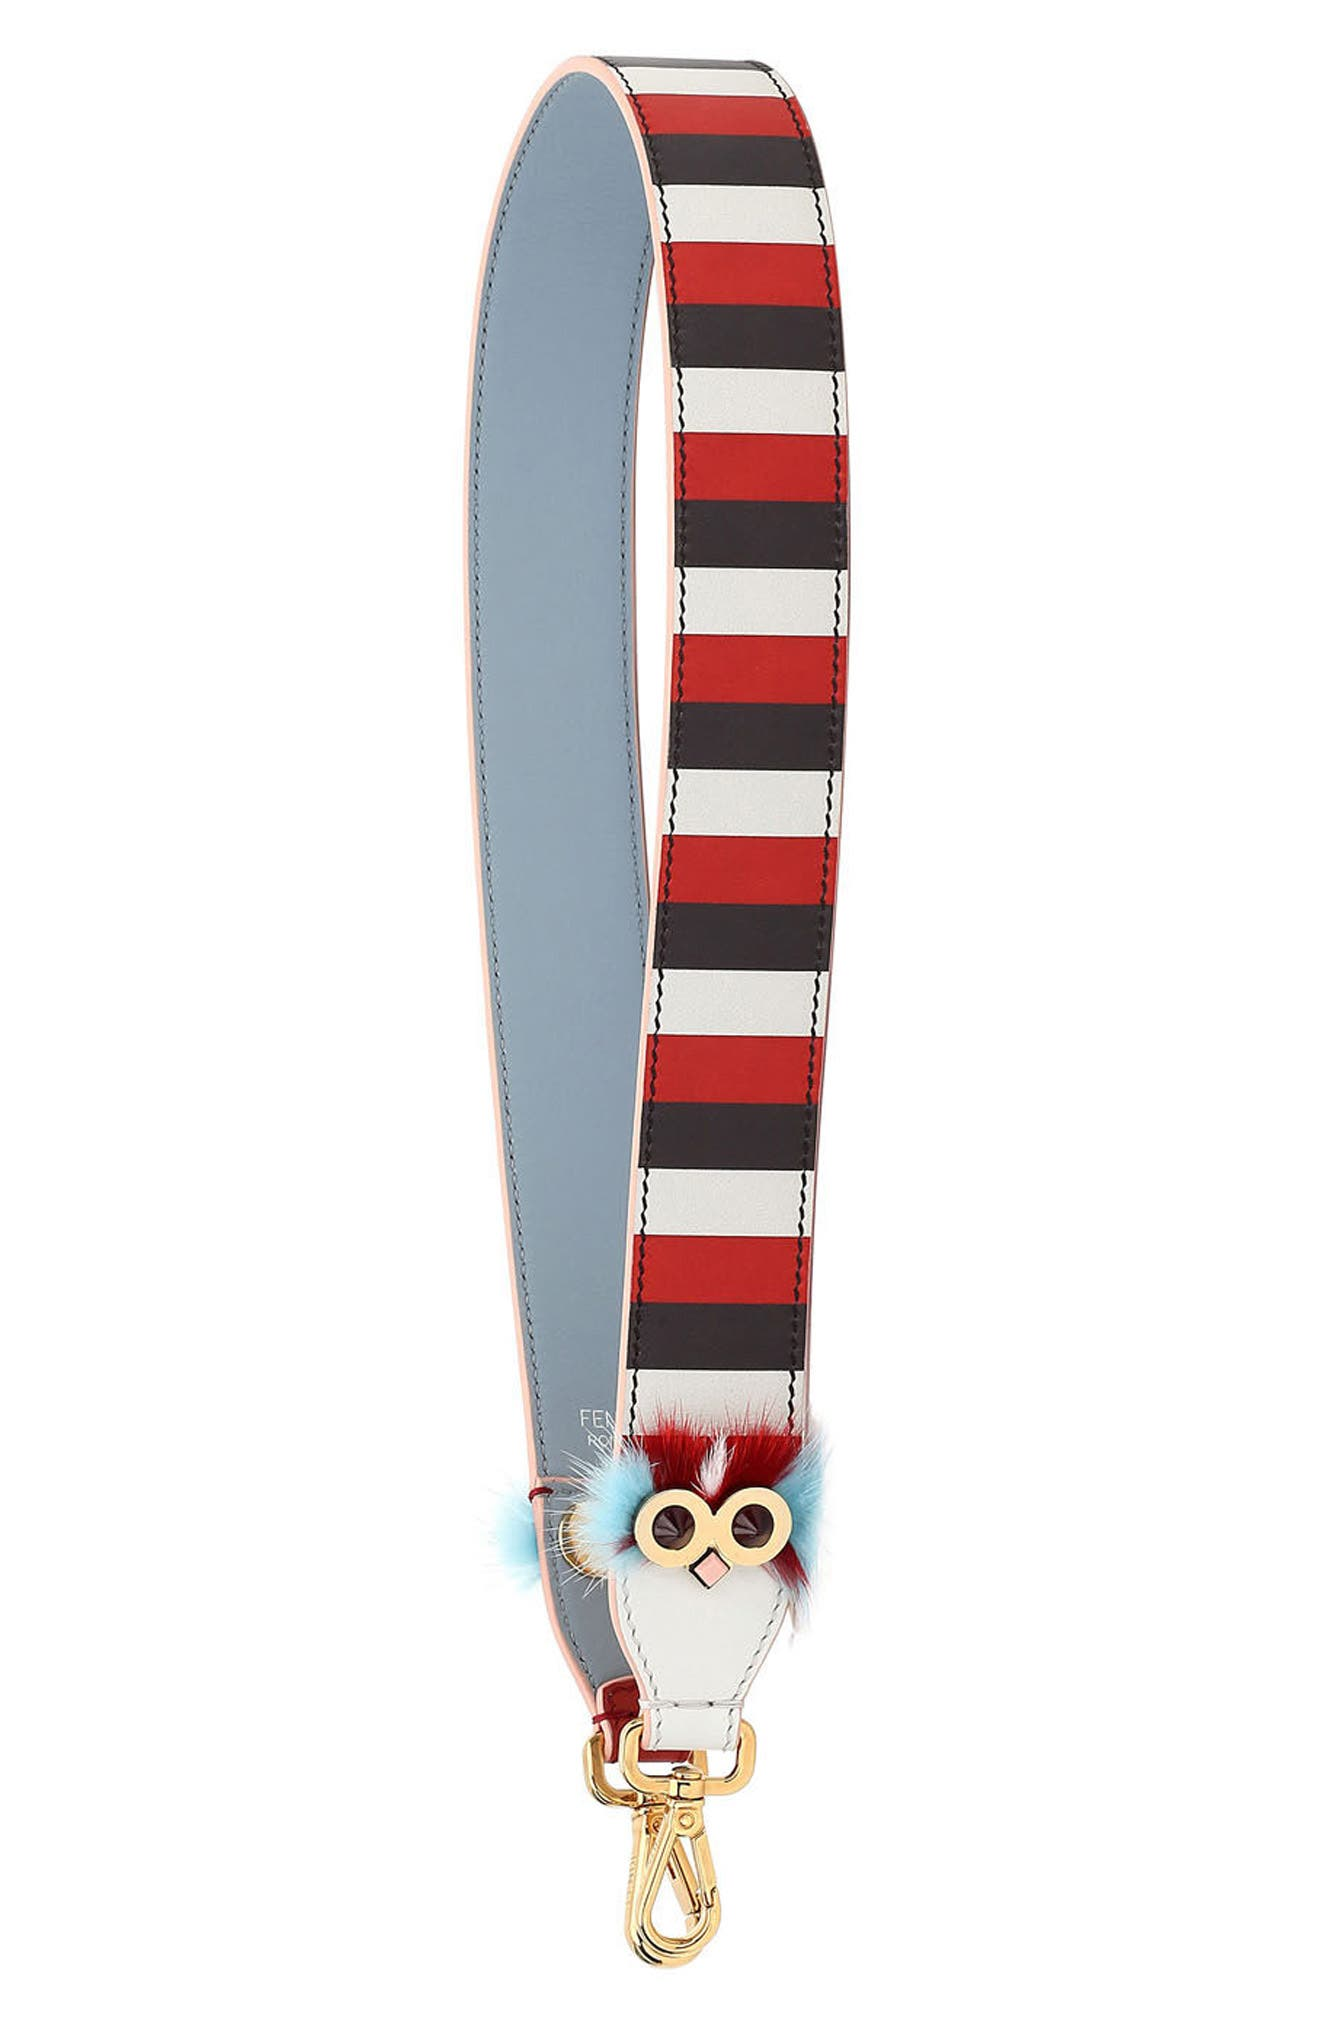 Strap You Striped Leather Guitar Bag Strap with Genuine Mink Fur Trim,                             Main thumbnail 1, color,                             WHITE/BLOODY MARY/MULTI